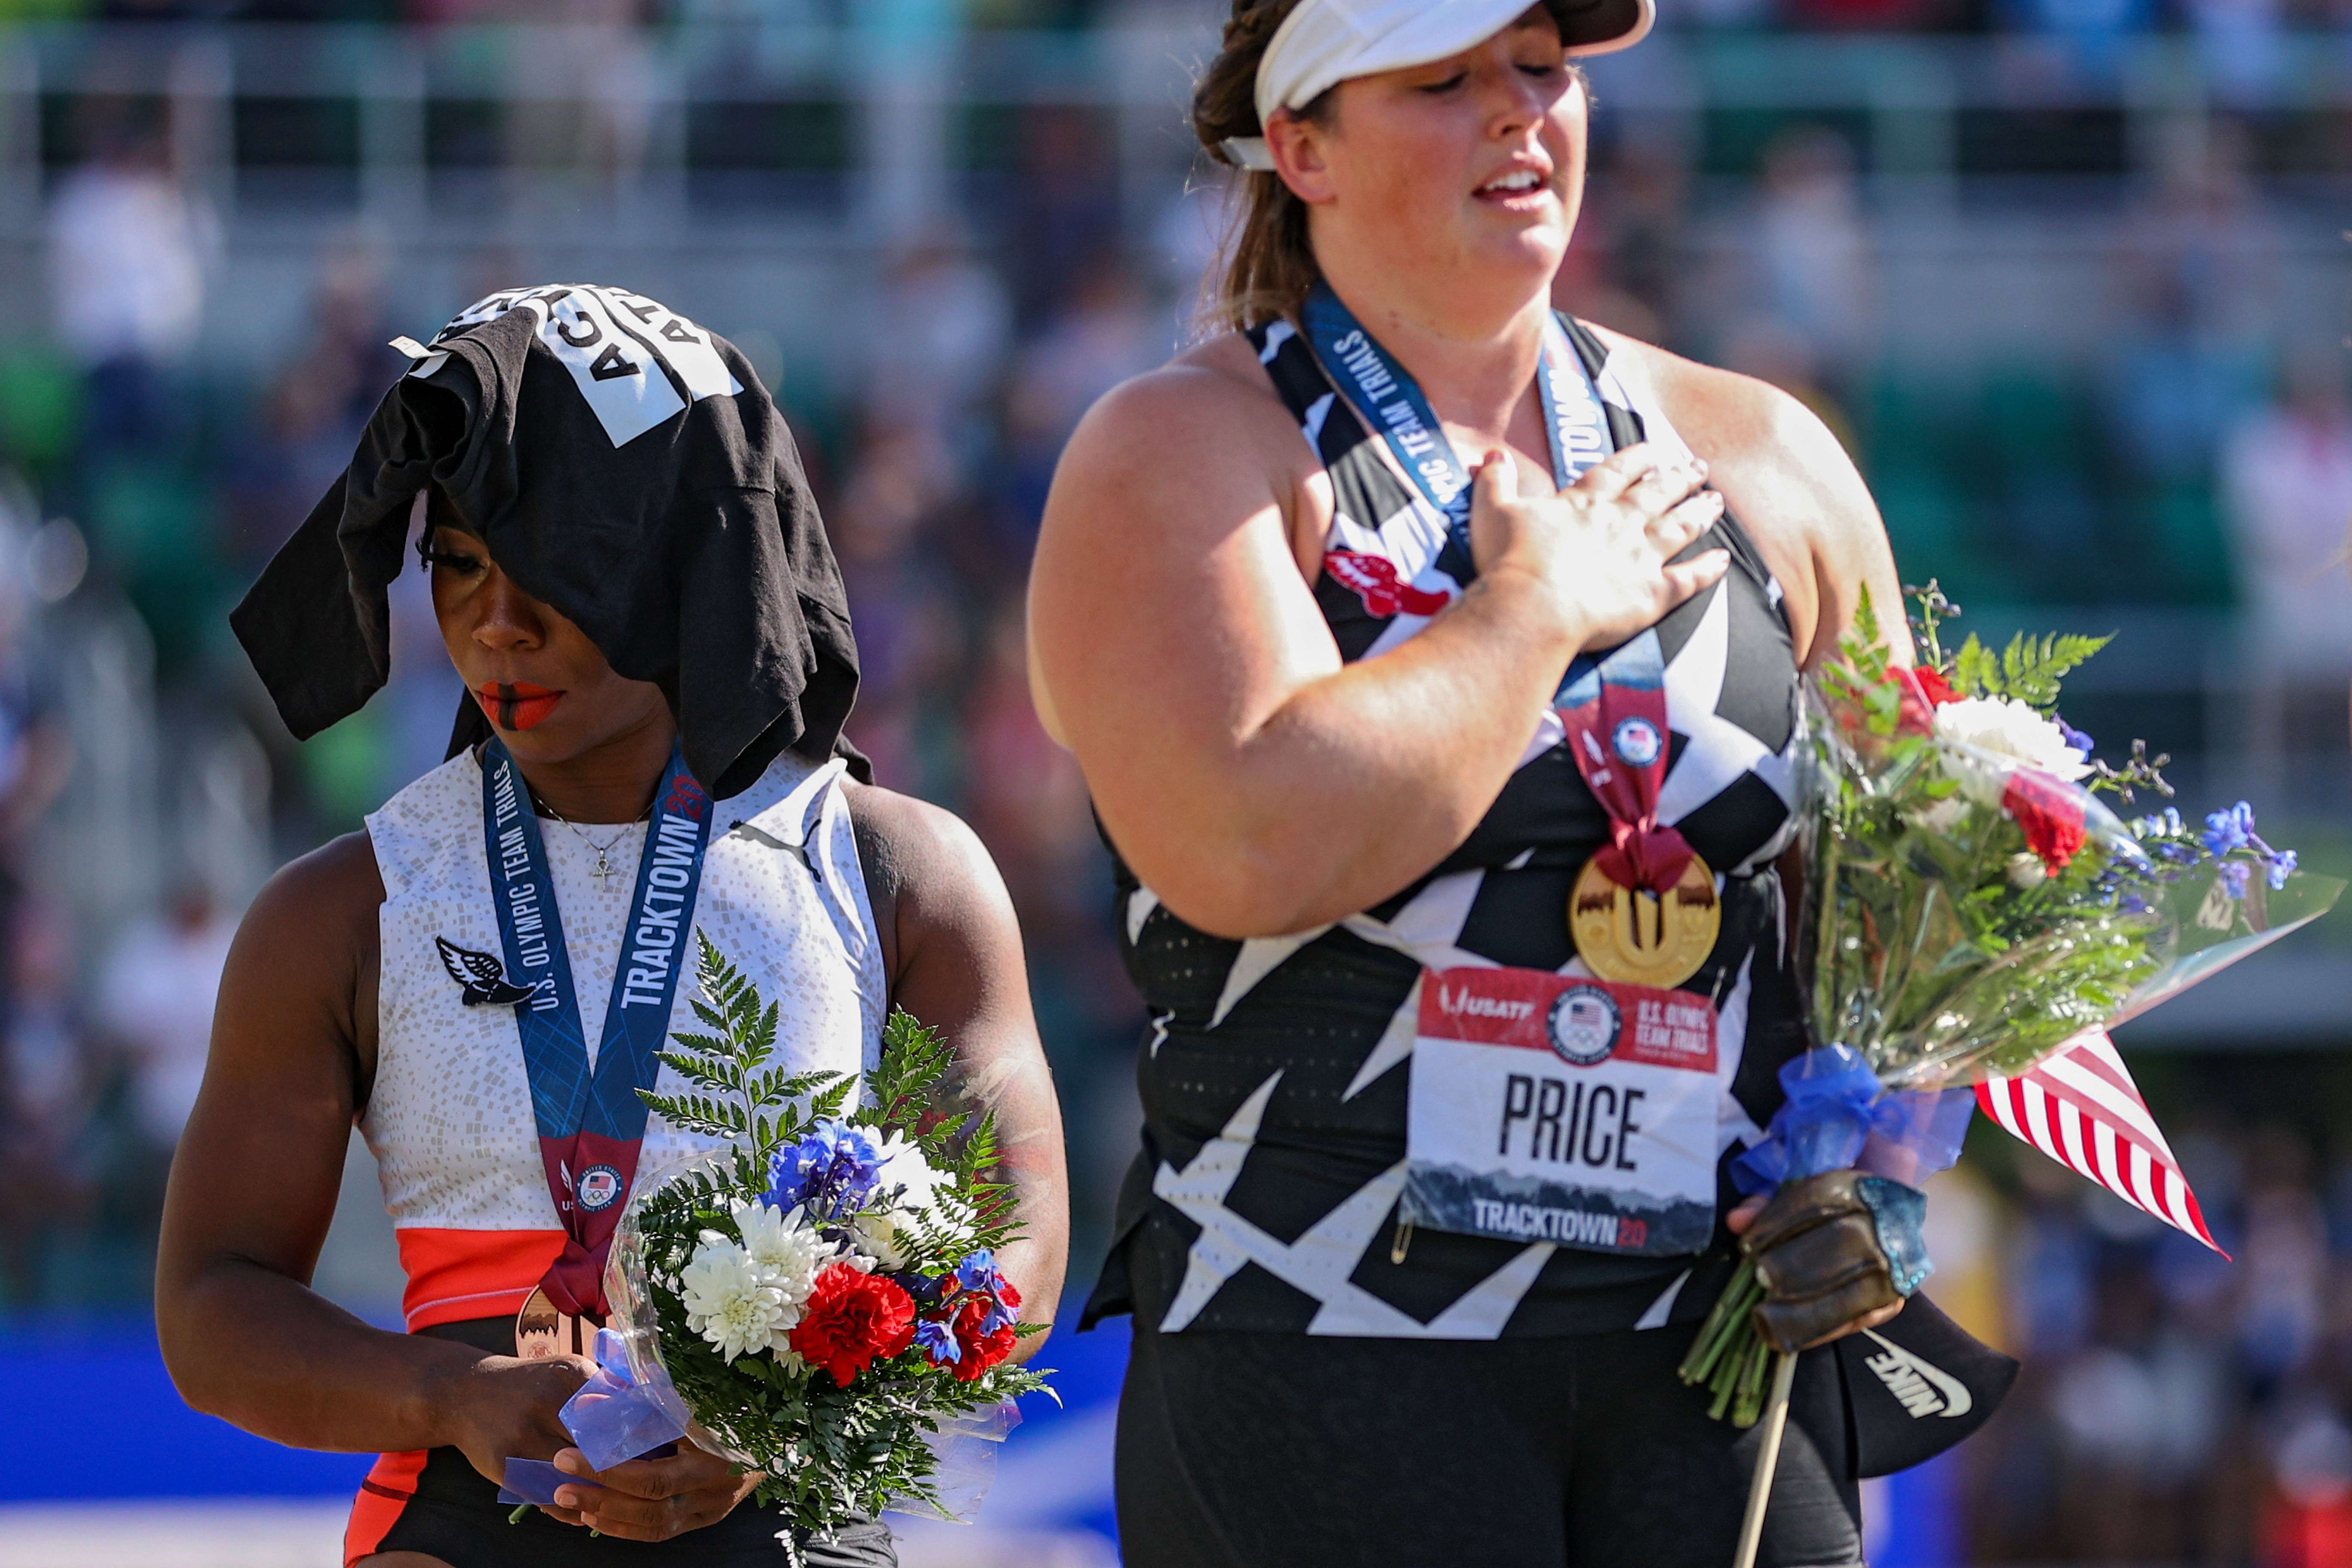 EUGENE, OREGON - JUNE 26: Gwendolyn Berry (L), third place, turns away from U.S. flag during the U.S. National Anthem as DeAnna Price (C), first place, also stands on the podium after the Women's Hammer Throw final on day nine of the 2020 U.S. Olympic Track & Field Team Trials at Hayward Field on June 26, 2021 in Eugene, Oregon. In 2019, the USOPC reprimanded Berry after her demonstration on the podium at the Lima Pan-American Games. (Photo by Patrick Smith/Getty Images)